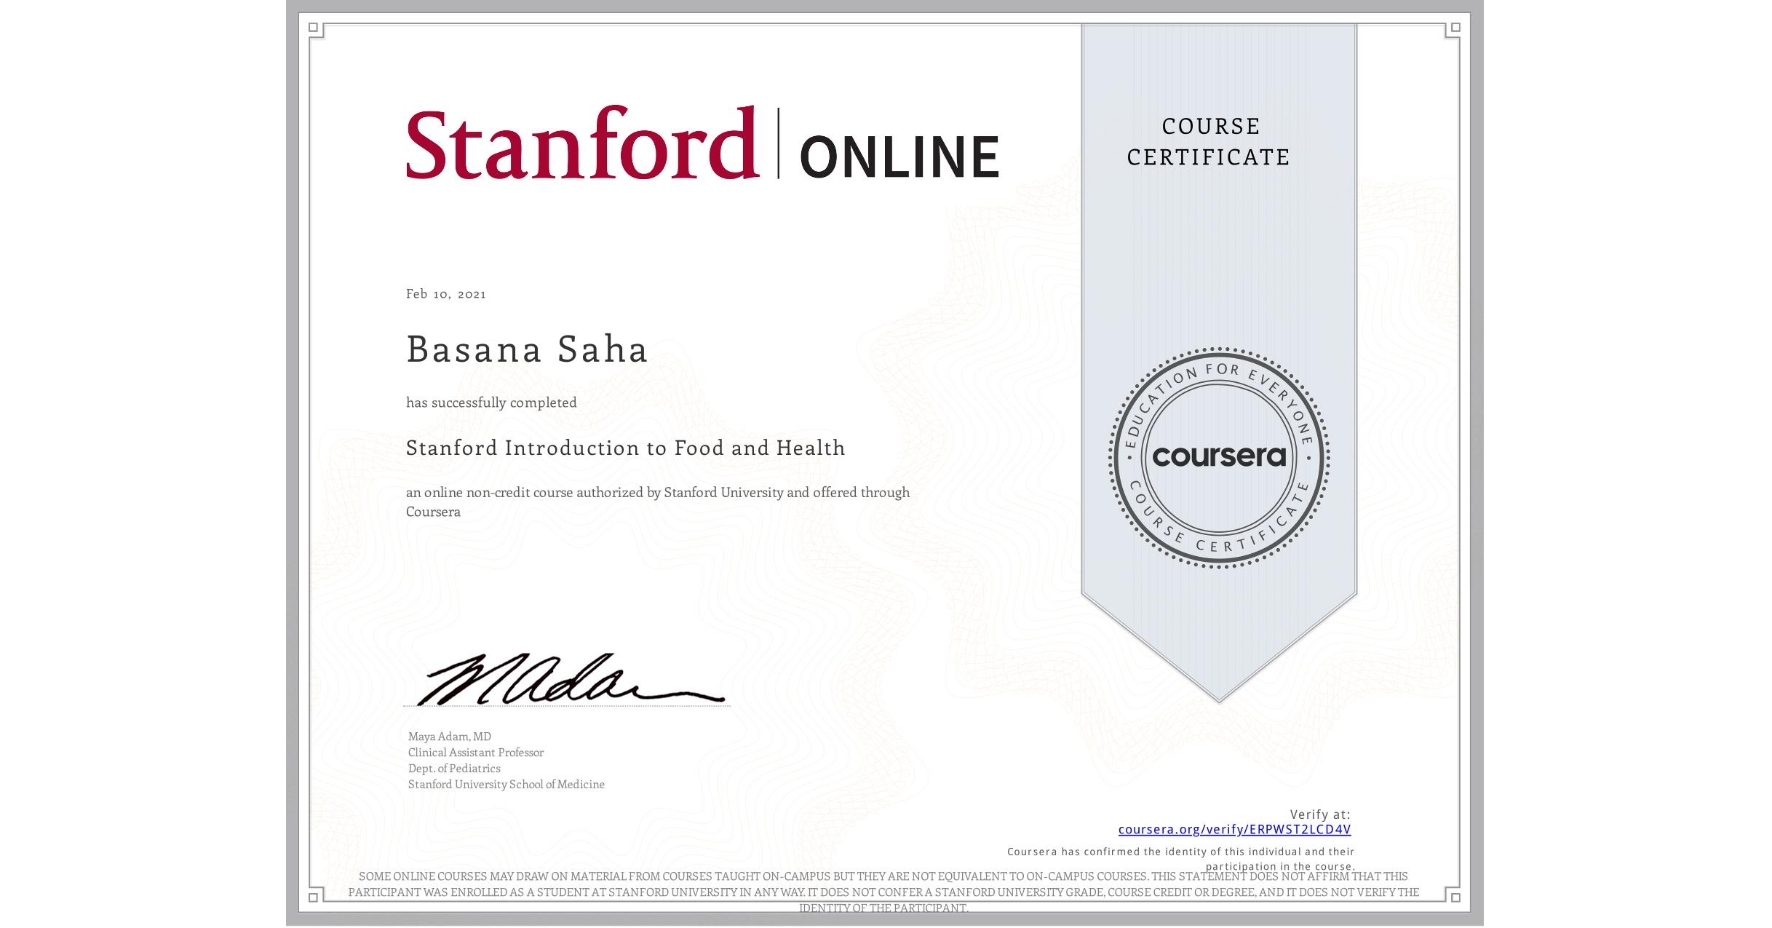 View certificate for Basana Saha, Stanford Introduction to Food and Health, an online non-credit course authorized by Stanford University and offered through Coursera